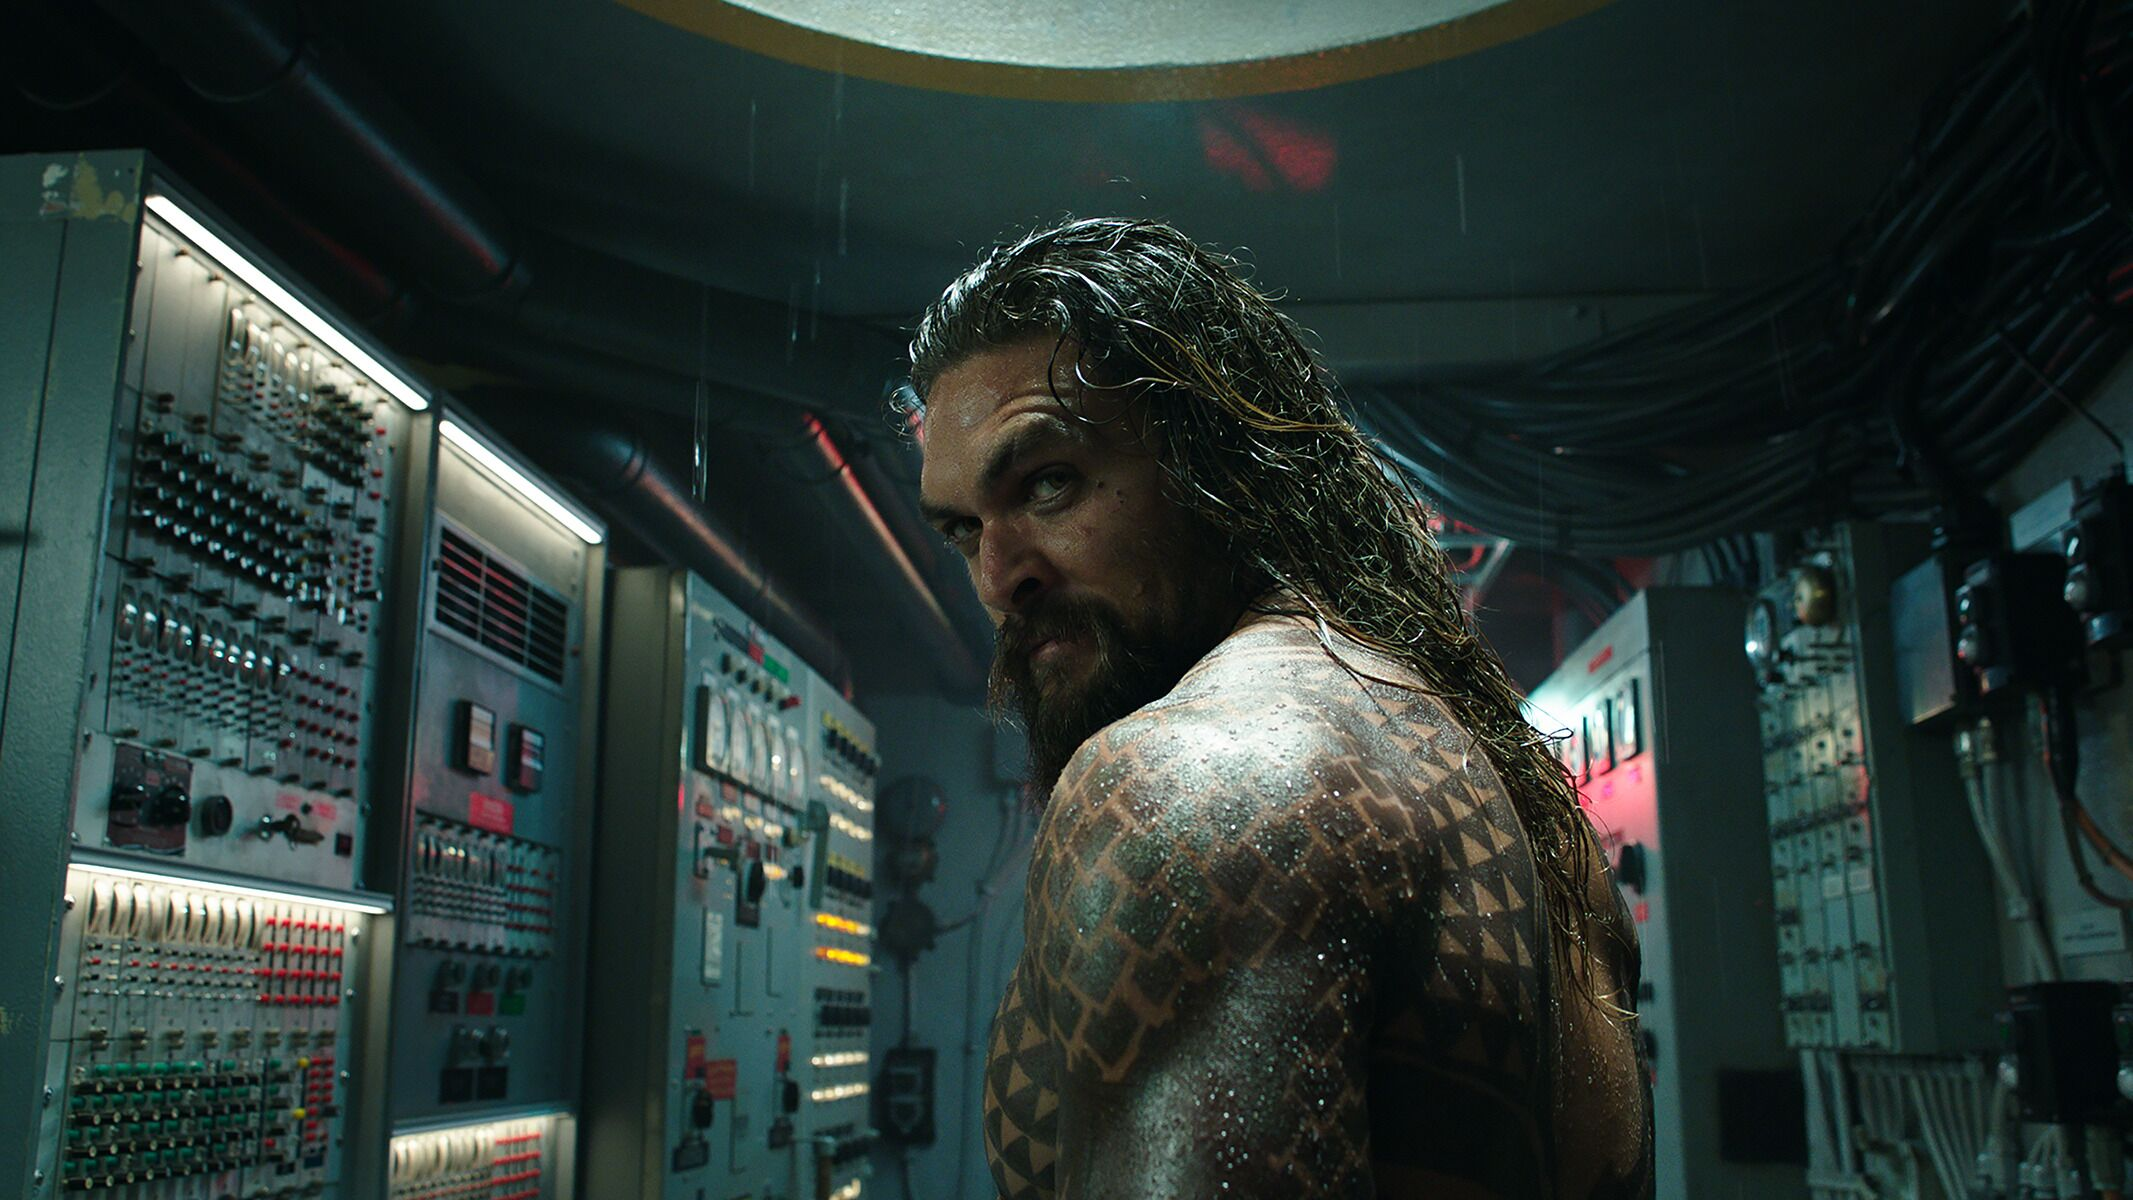 Aquaman 2 might be delayed, but it's for a good reason